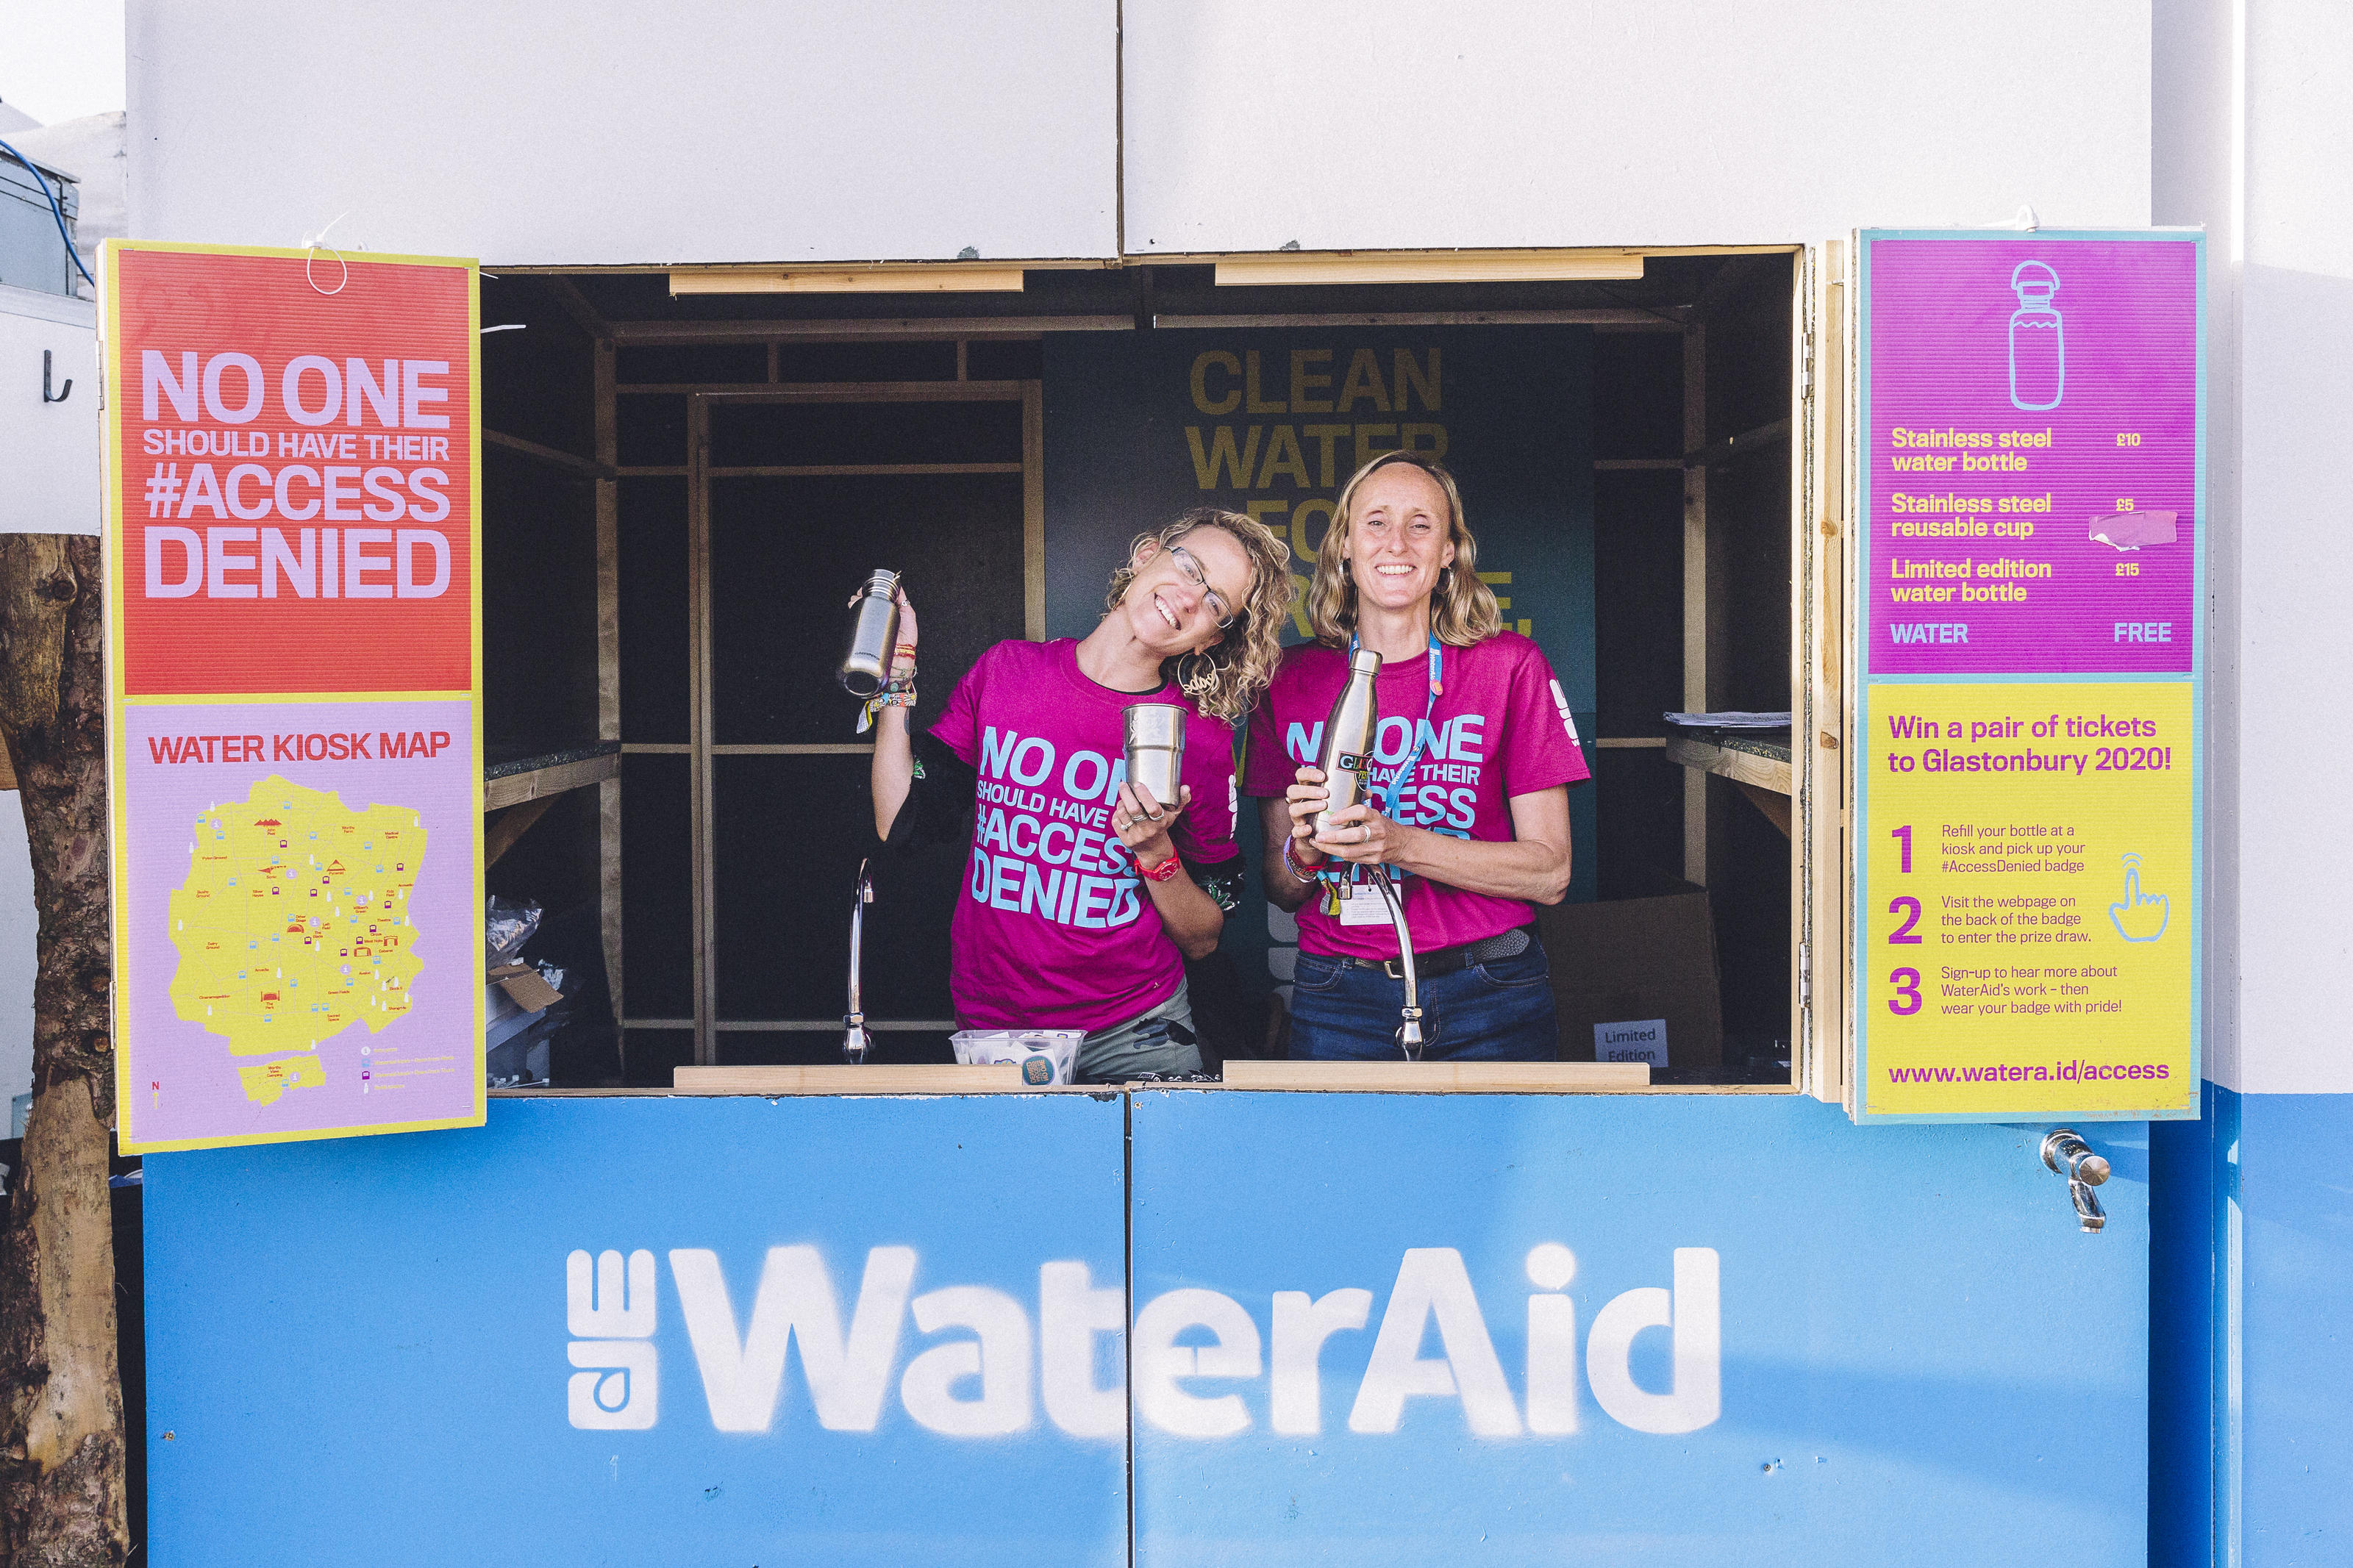 WaterAid volunteers Harriet Clark (left) and Nadia Williams (right) staff a refill kiosk at the 2019 Glastonbury Festival.